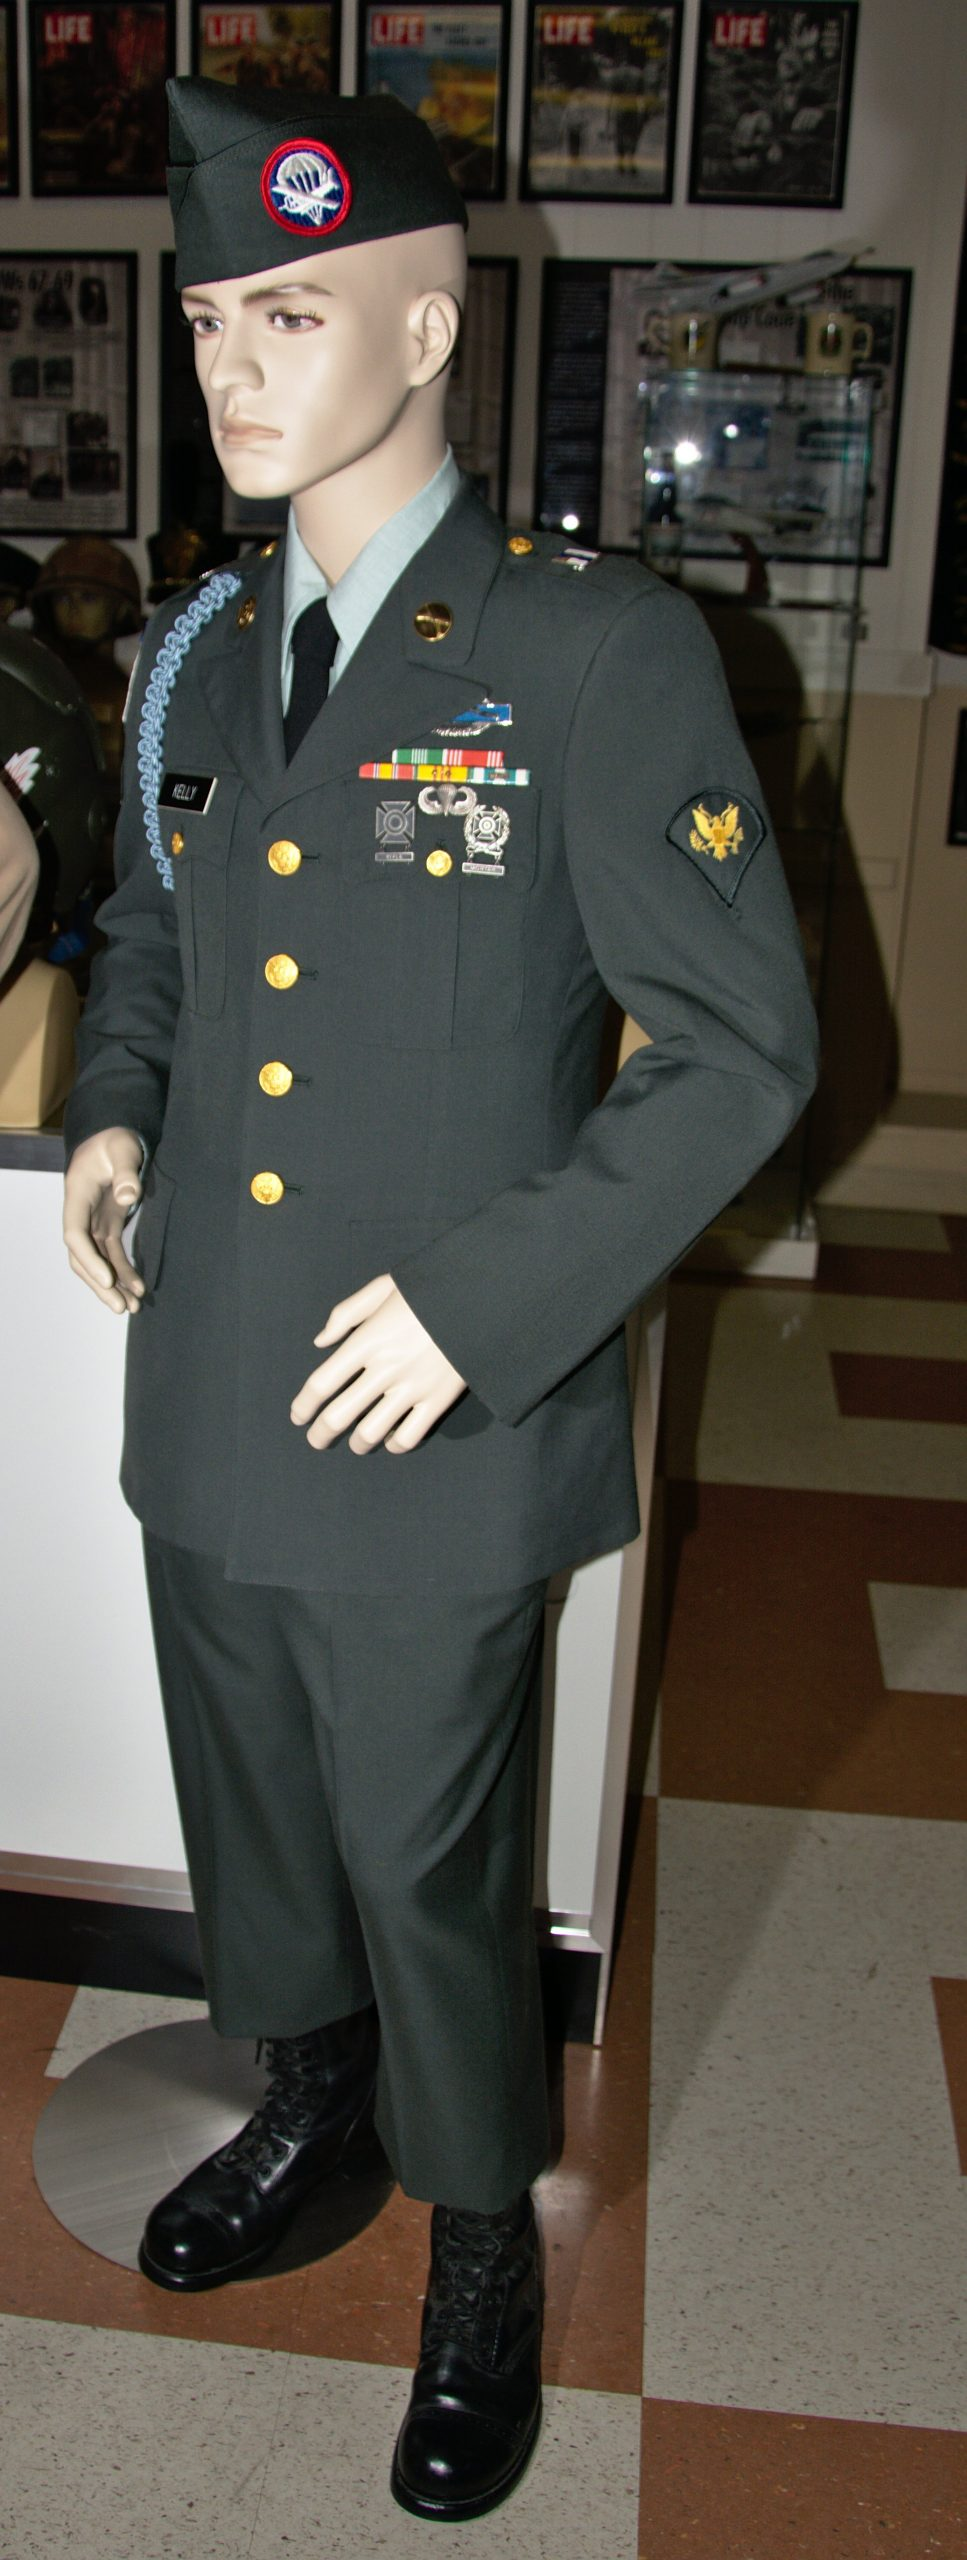 Specialist Kelly - US Army.